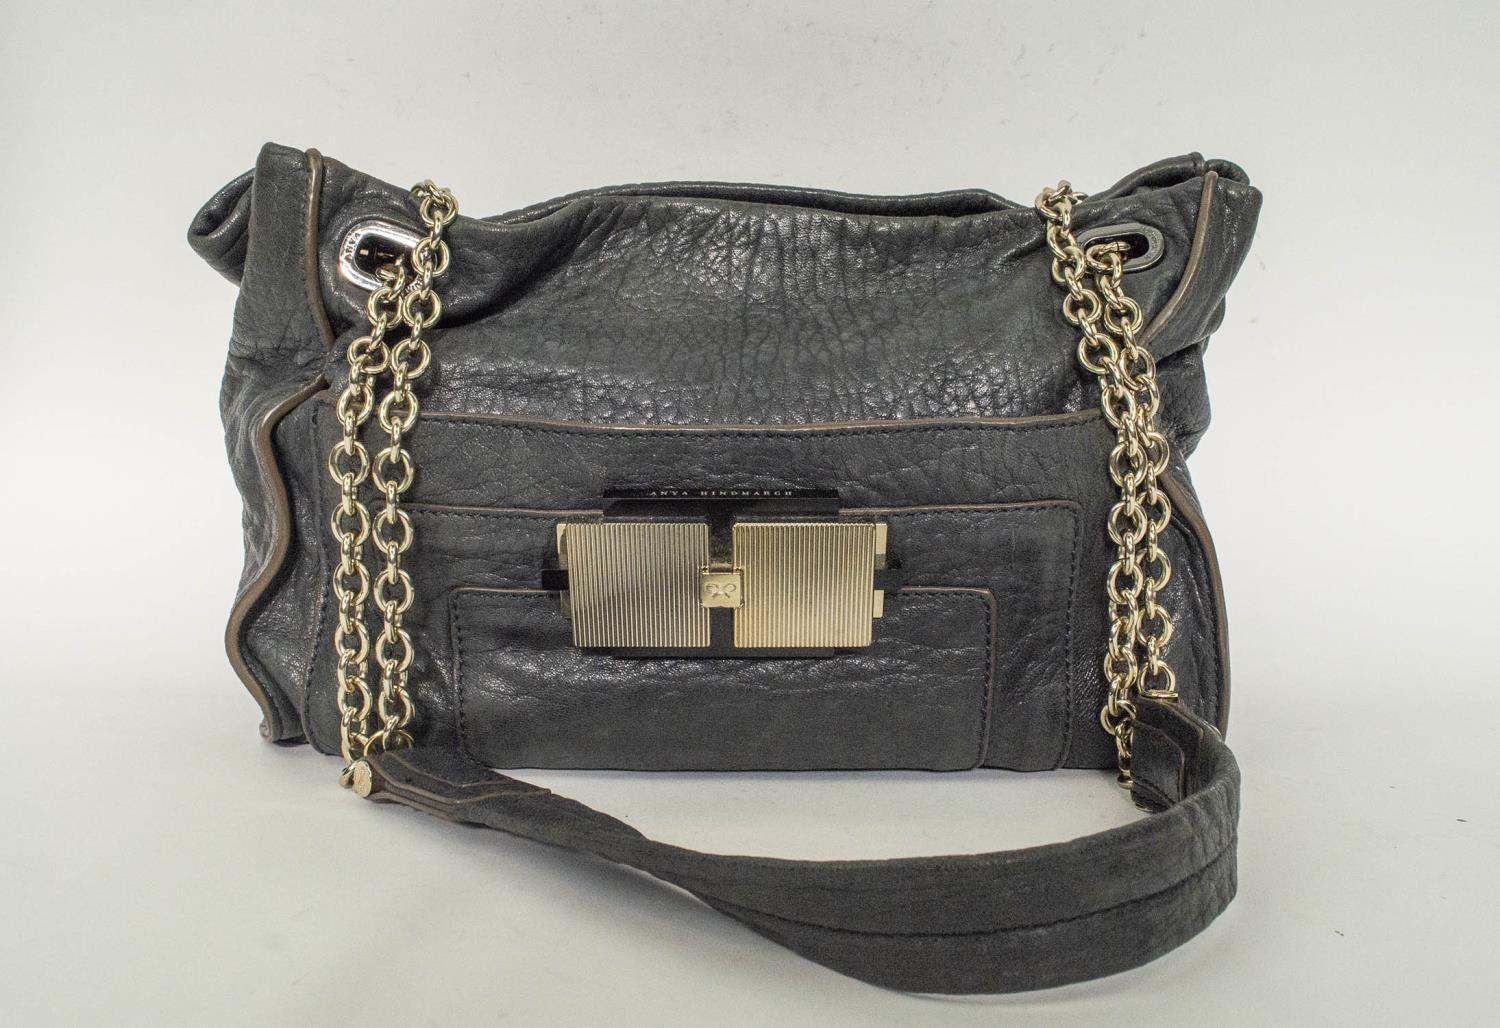 ANYA HINDMARCH SHOULDER BAG, leather with leather and chain strap, gun metal and silver hardware,